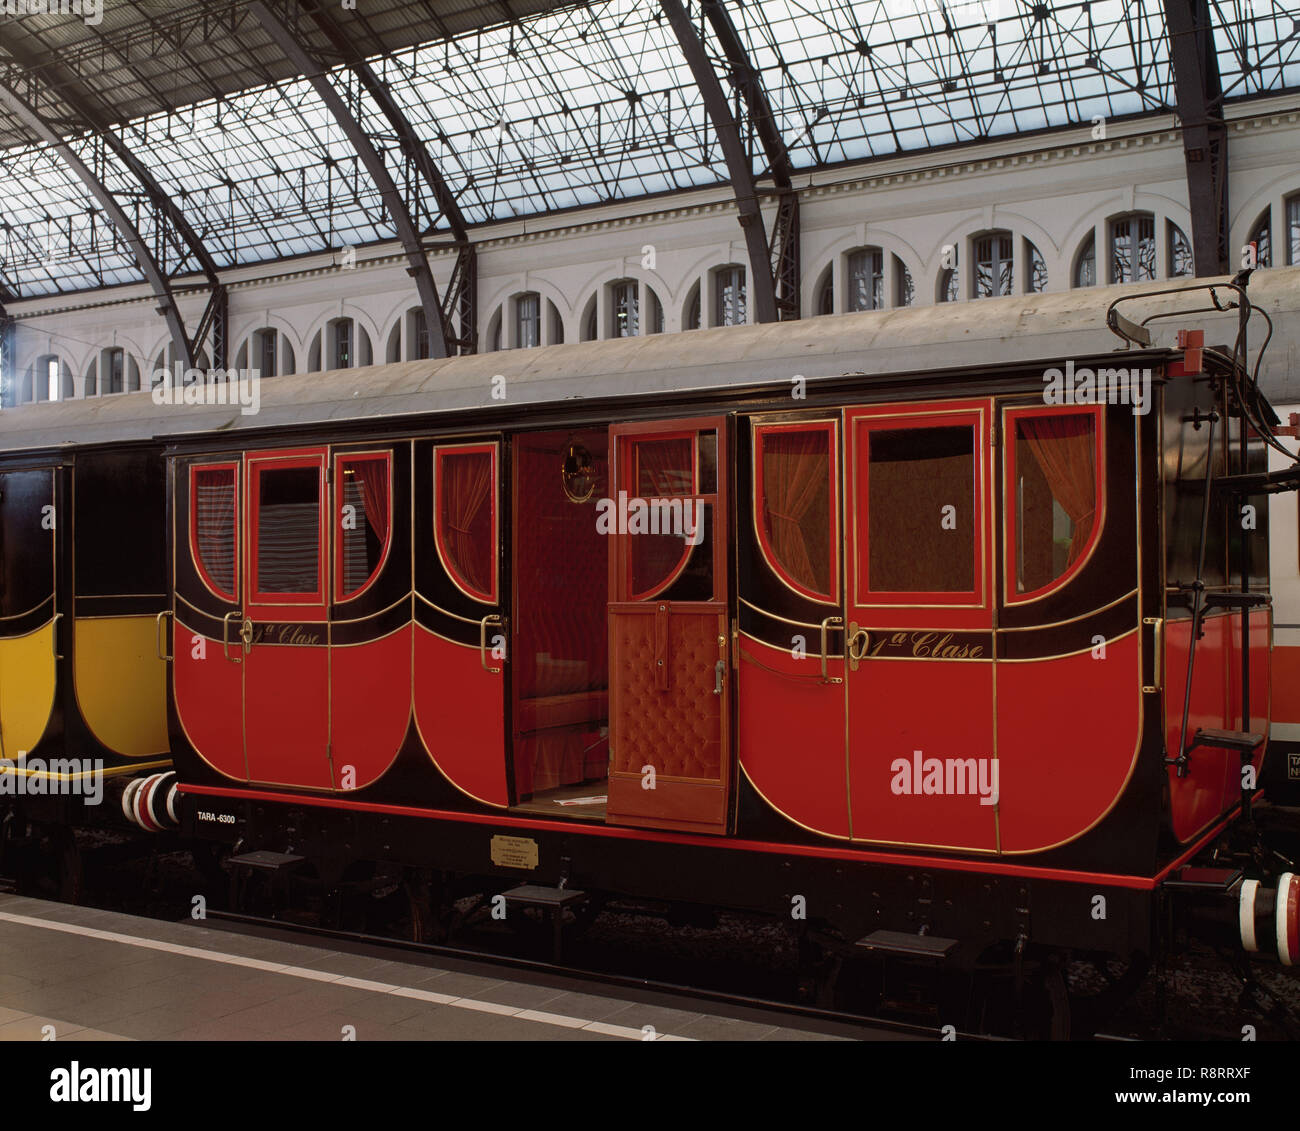 Railway of the short line from Barcelona to Mataro, 1848. Wagon, first class. Replica for the Exhibition '150 years of railroad in Spain' (1998-1999), held in France Station, Barcelona, Catalonia, Spain. - Stock Image